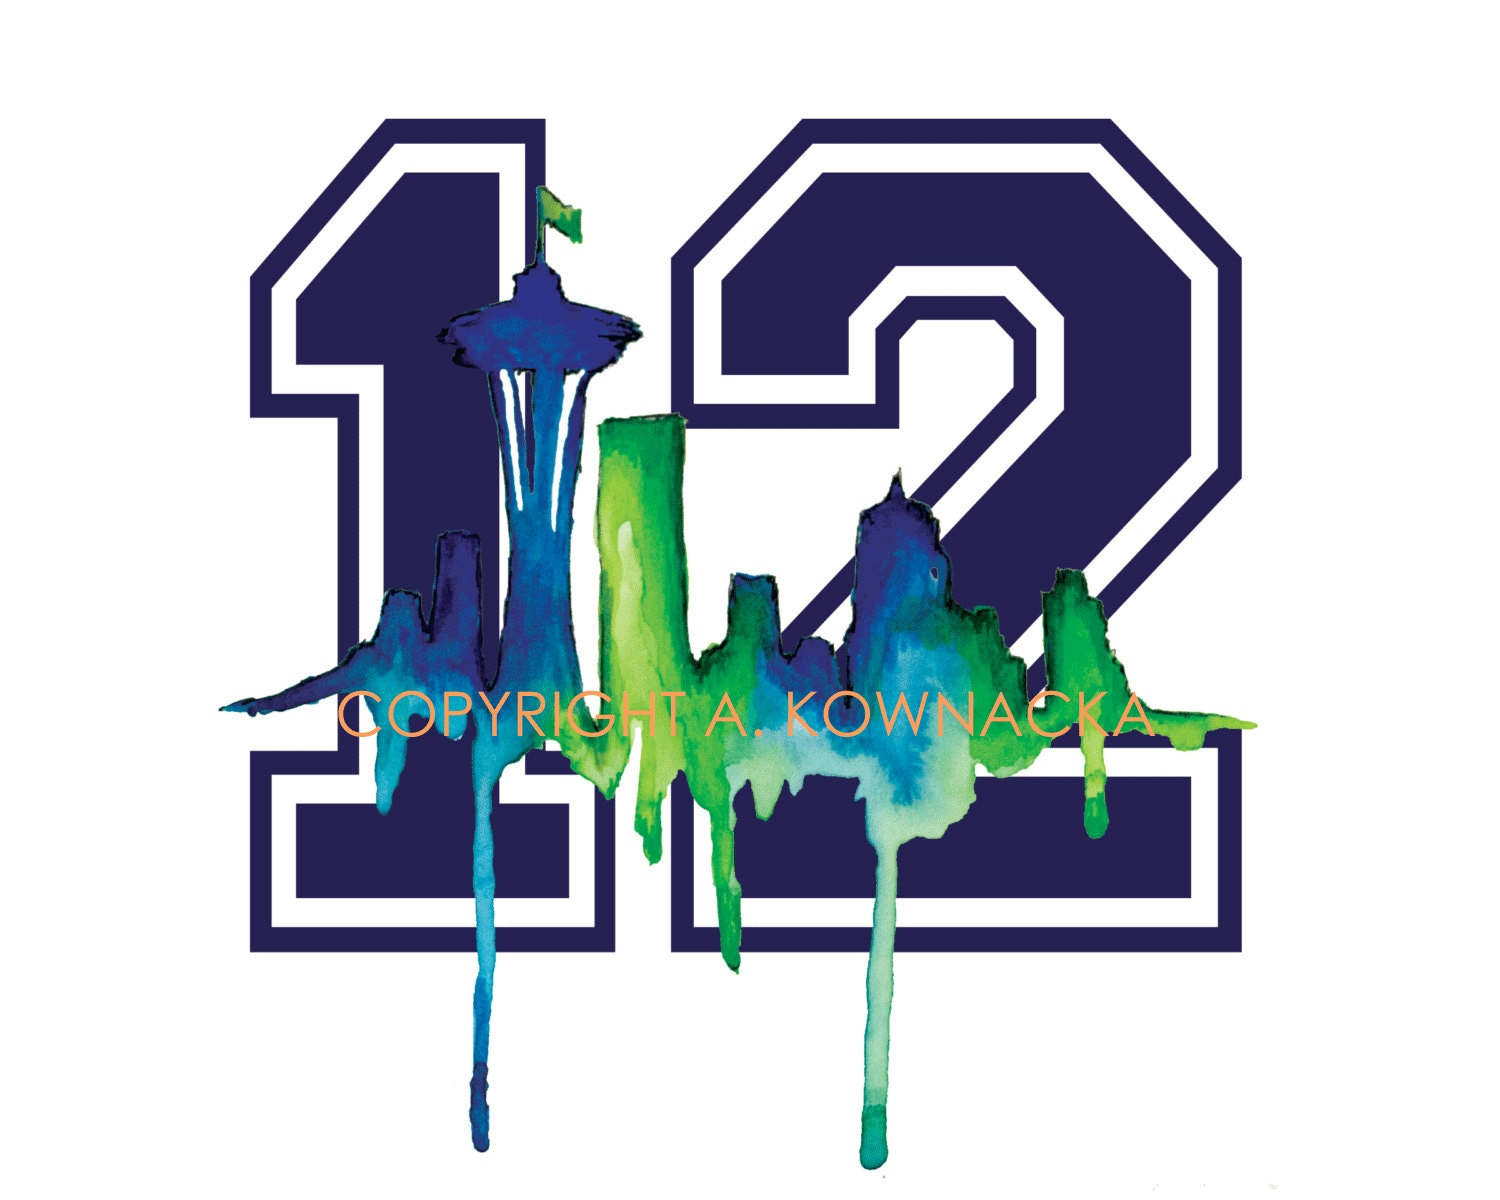 Seattle Skyline Seahawks 12th Man Illustration Watercolor